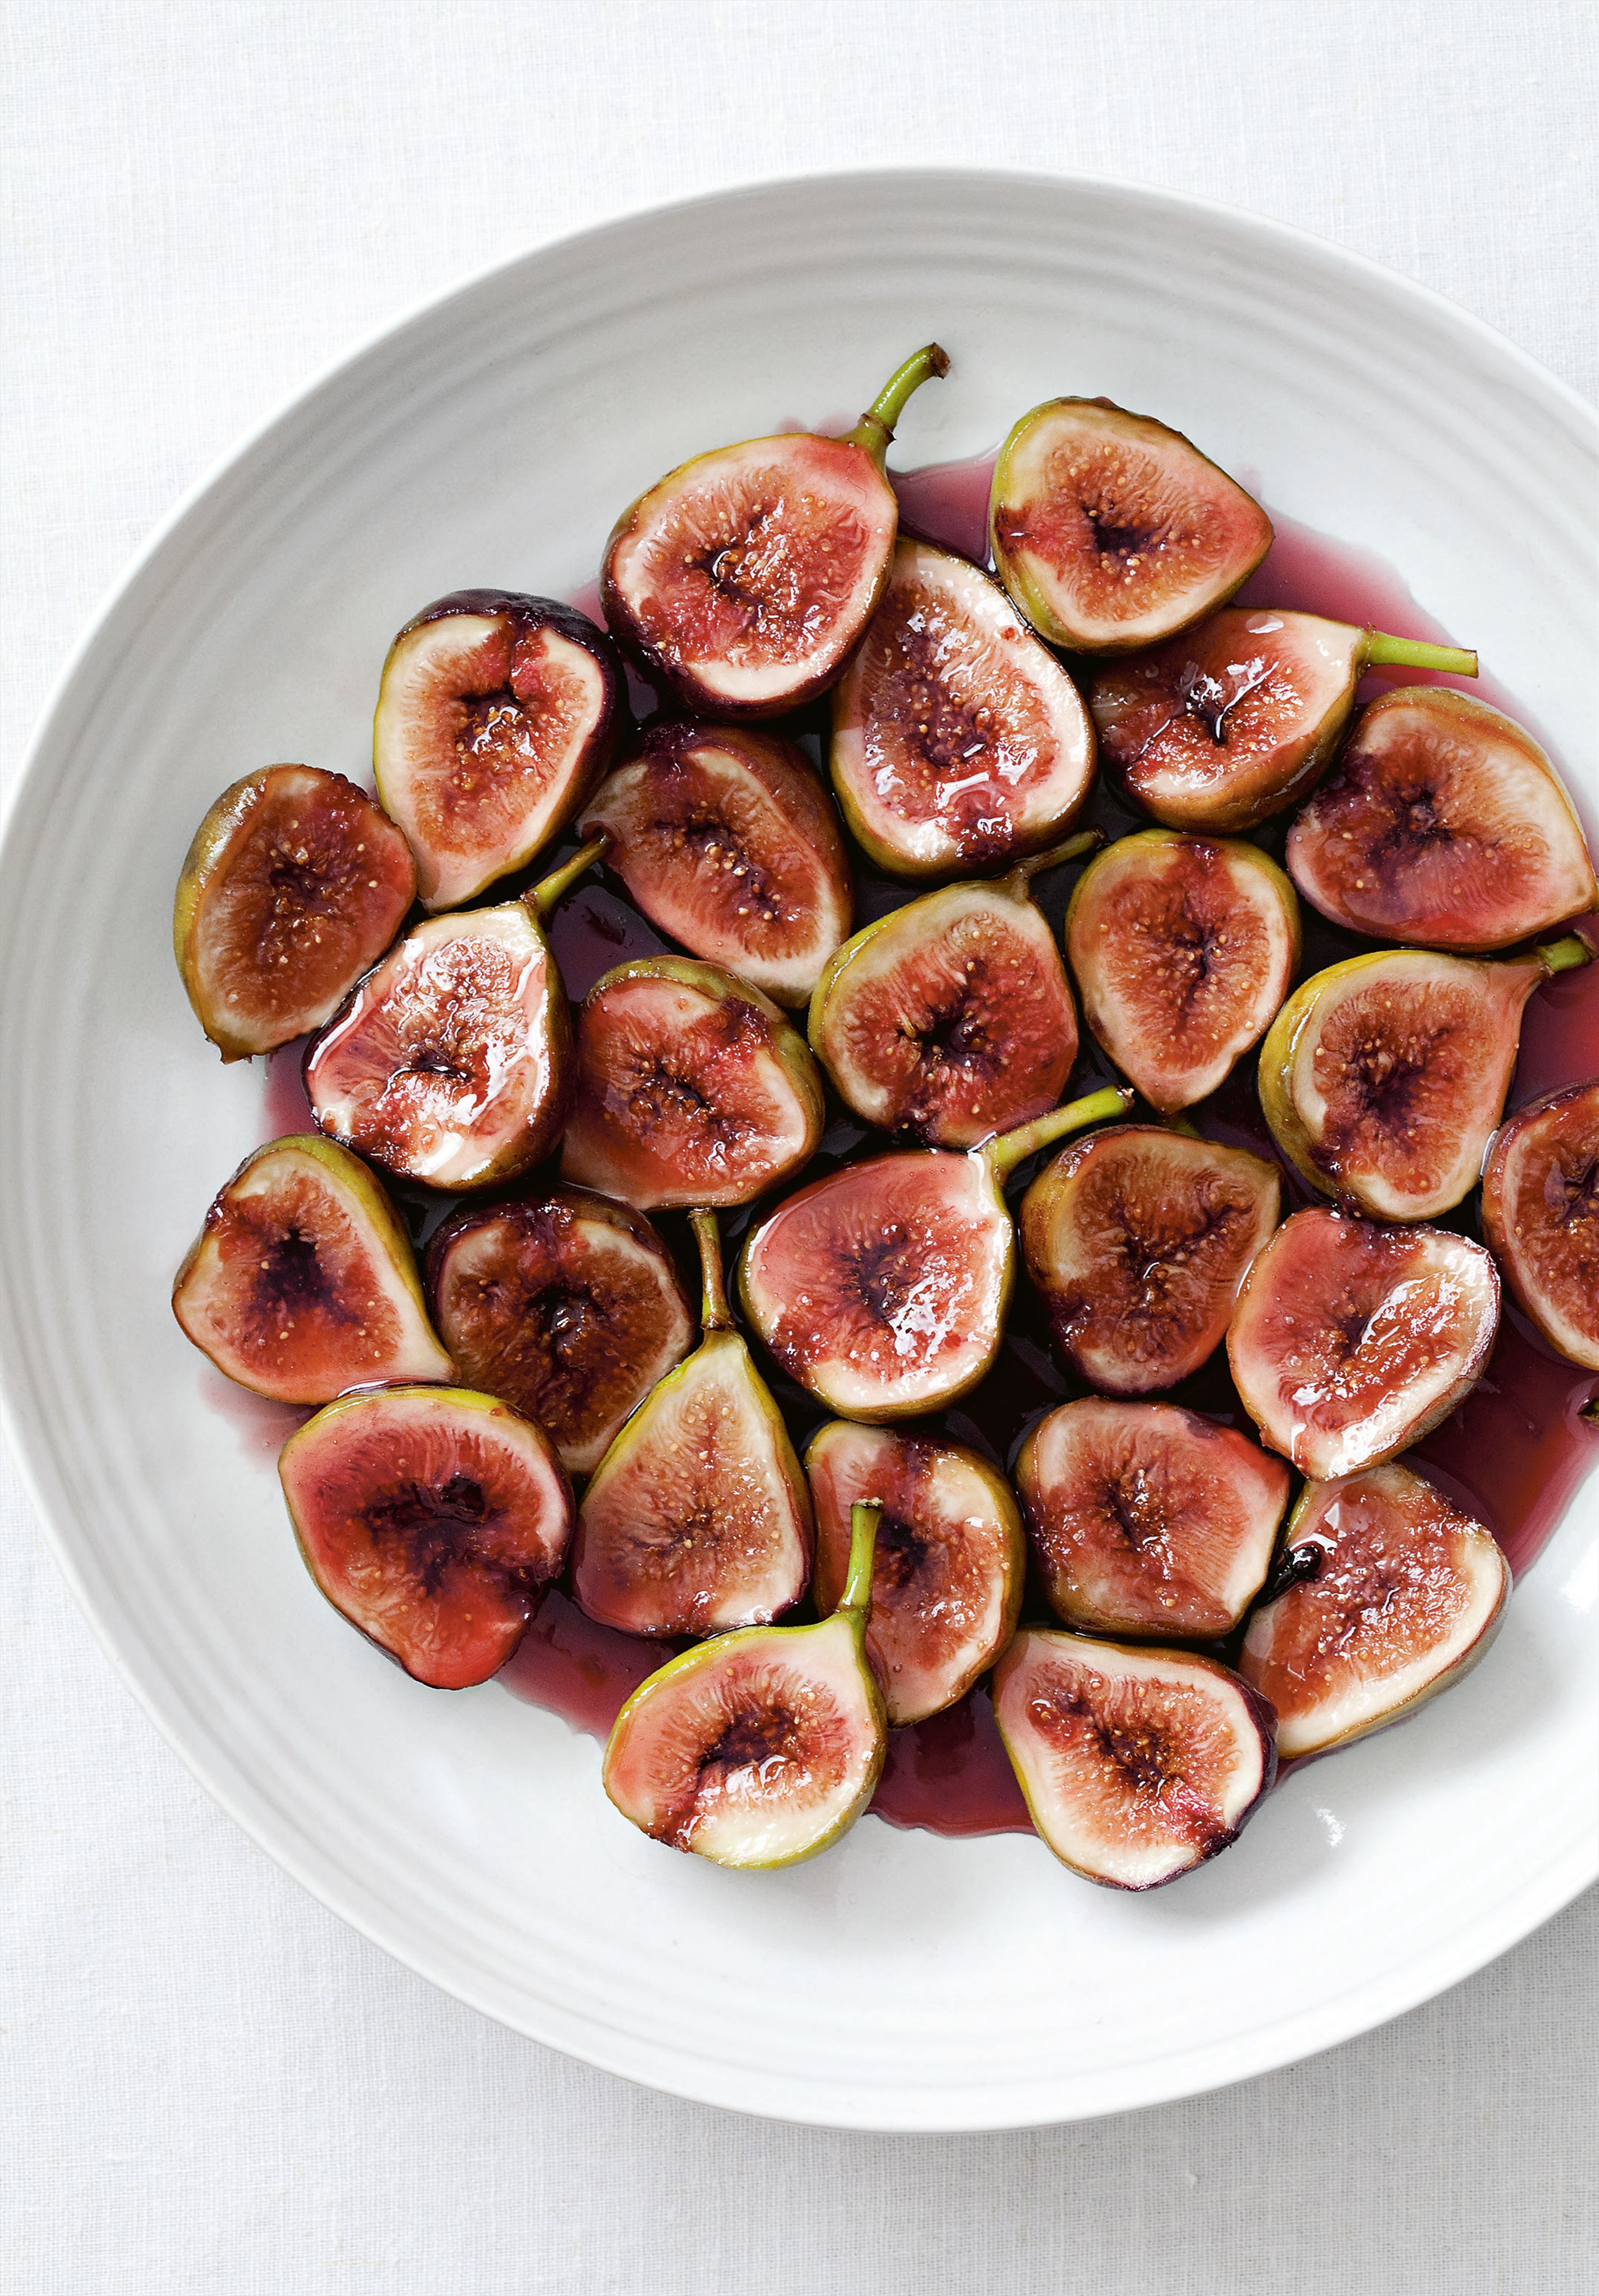 Figs poached in wine